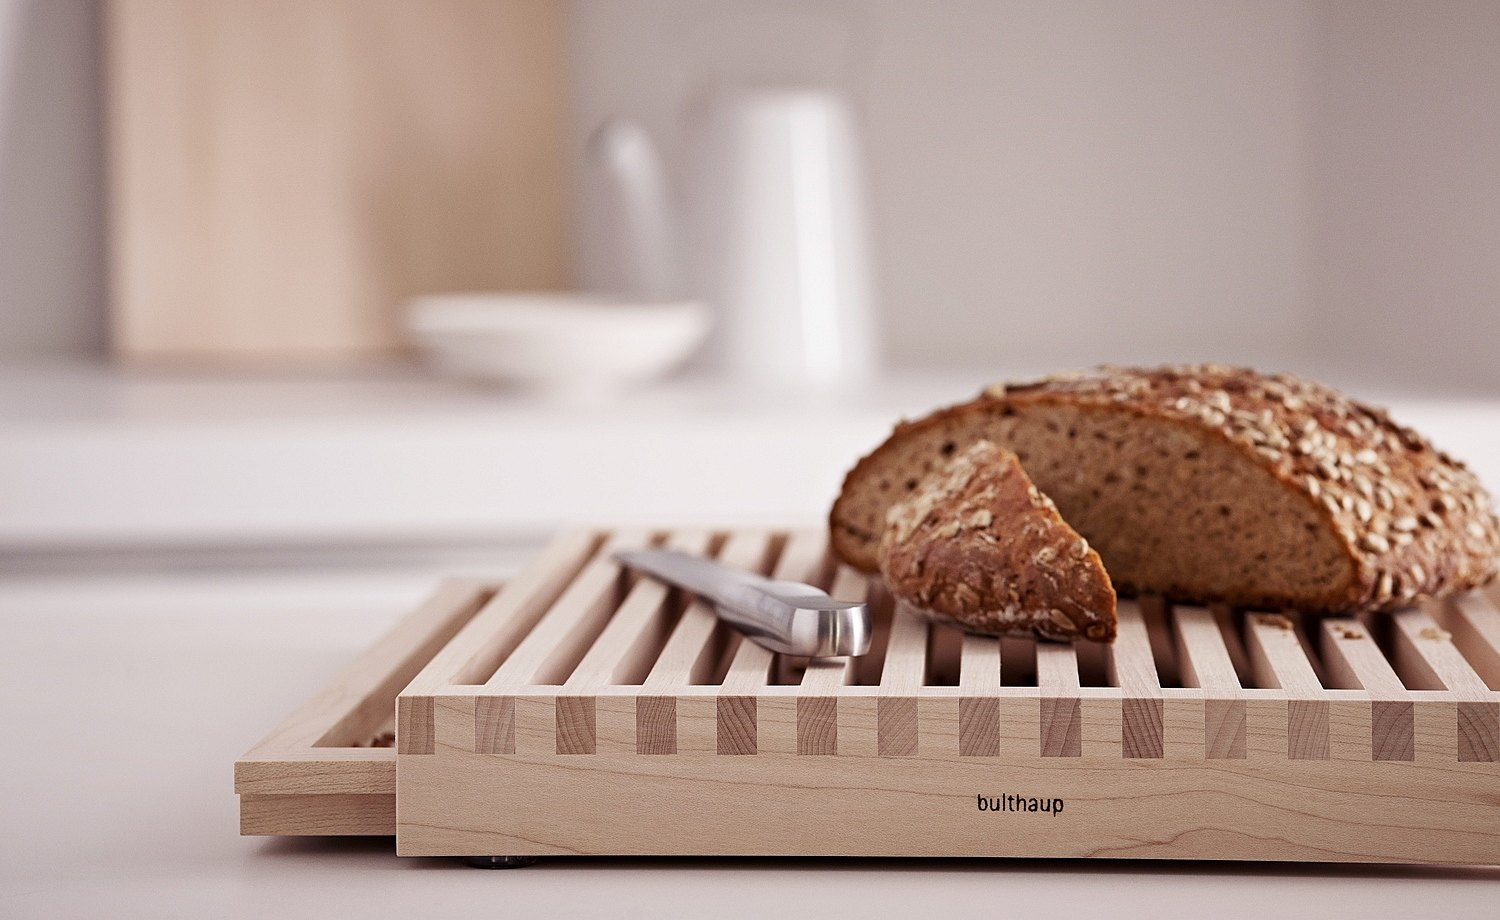 Breadboard in maple with grid and collection tray for crumbs